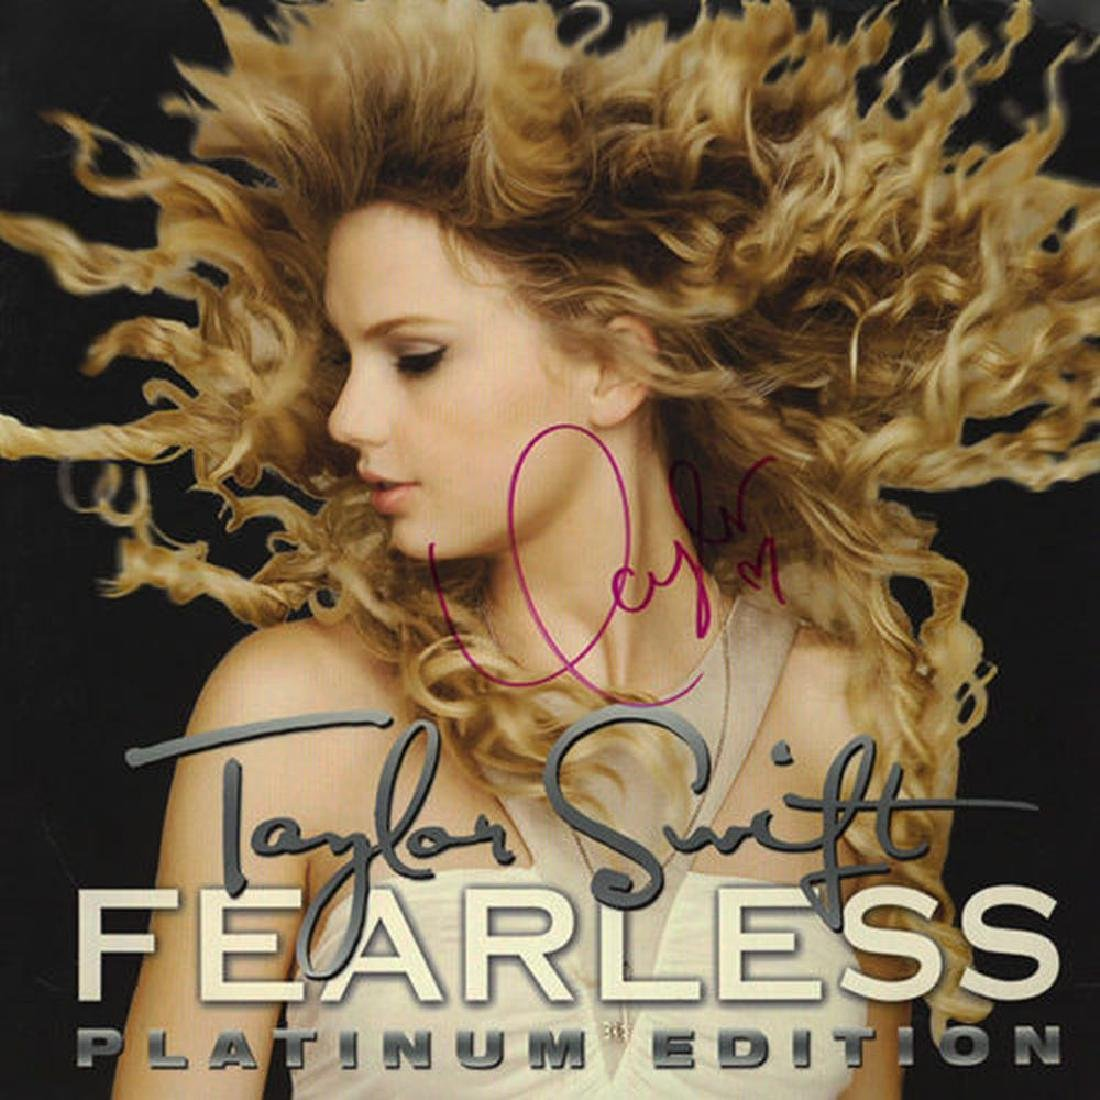 """Taylor Swift Signed """"Fearless Platinum Edition"""""""